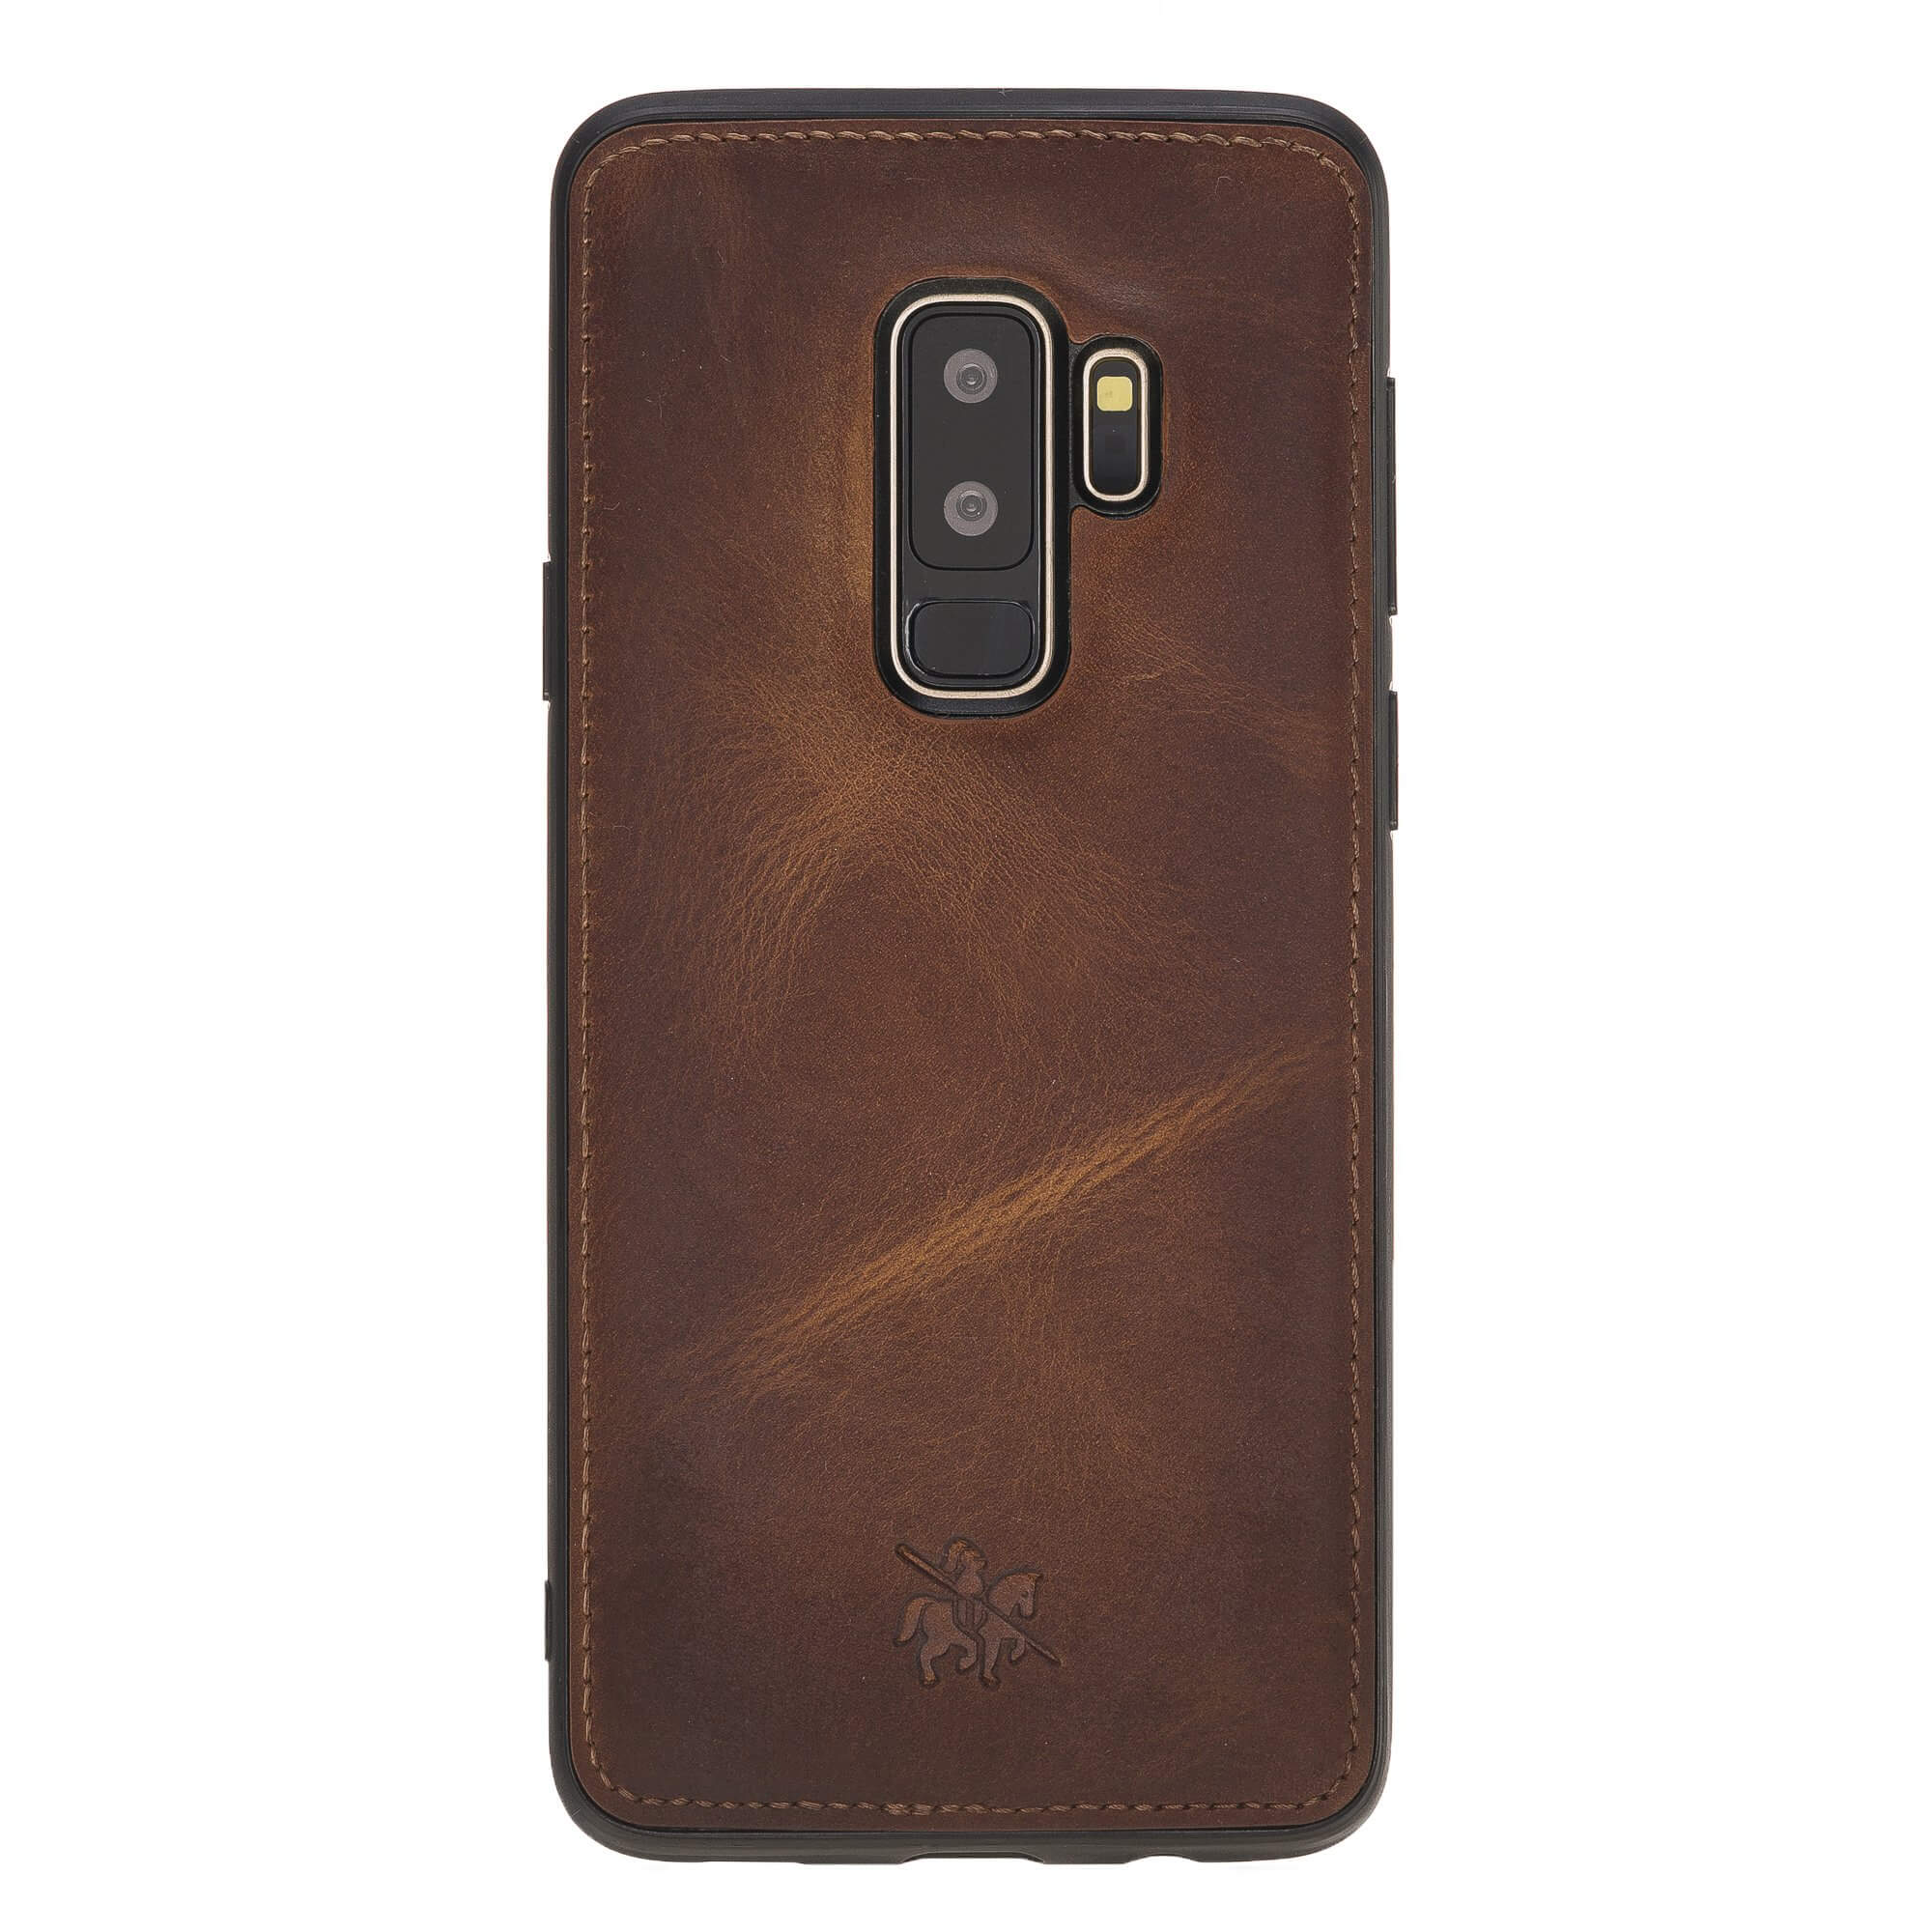 Lucca Snap On Leather Case for Samsung Galaxy S9 Plus